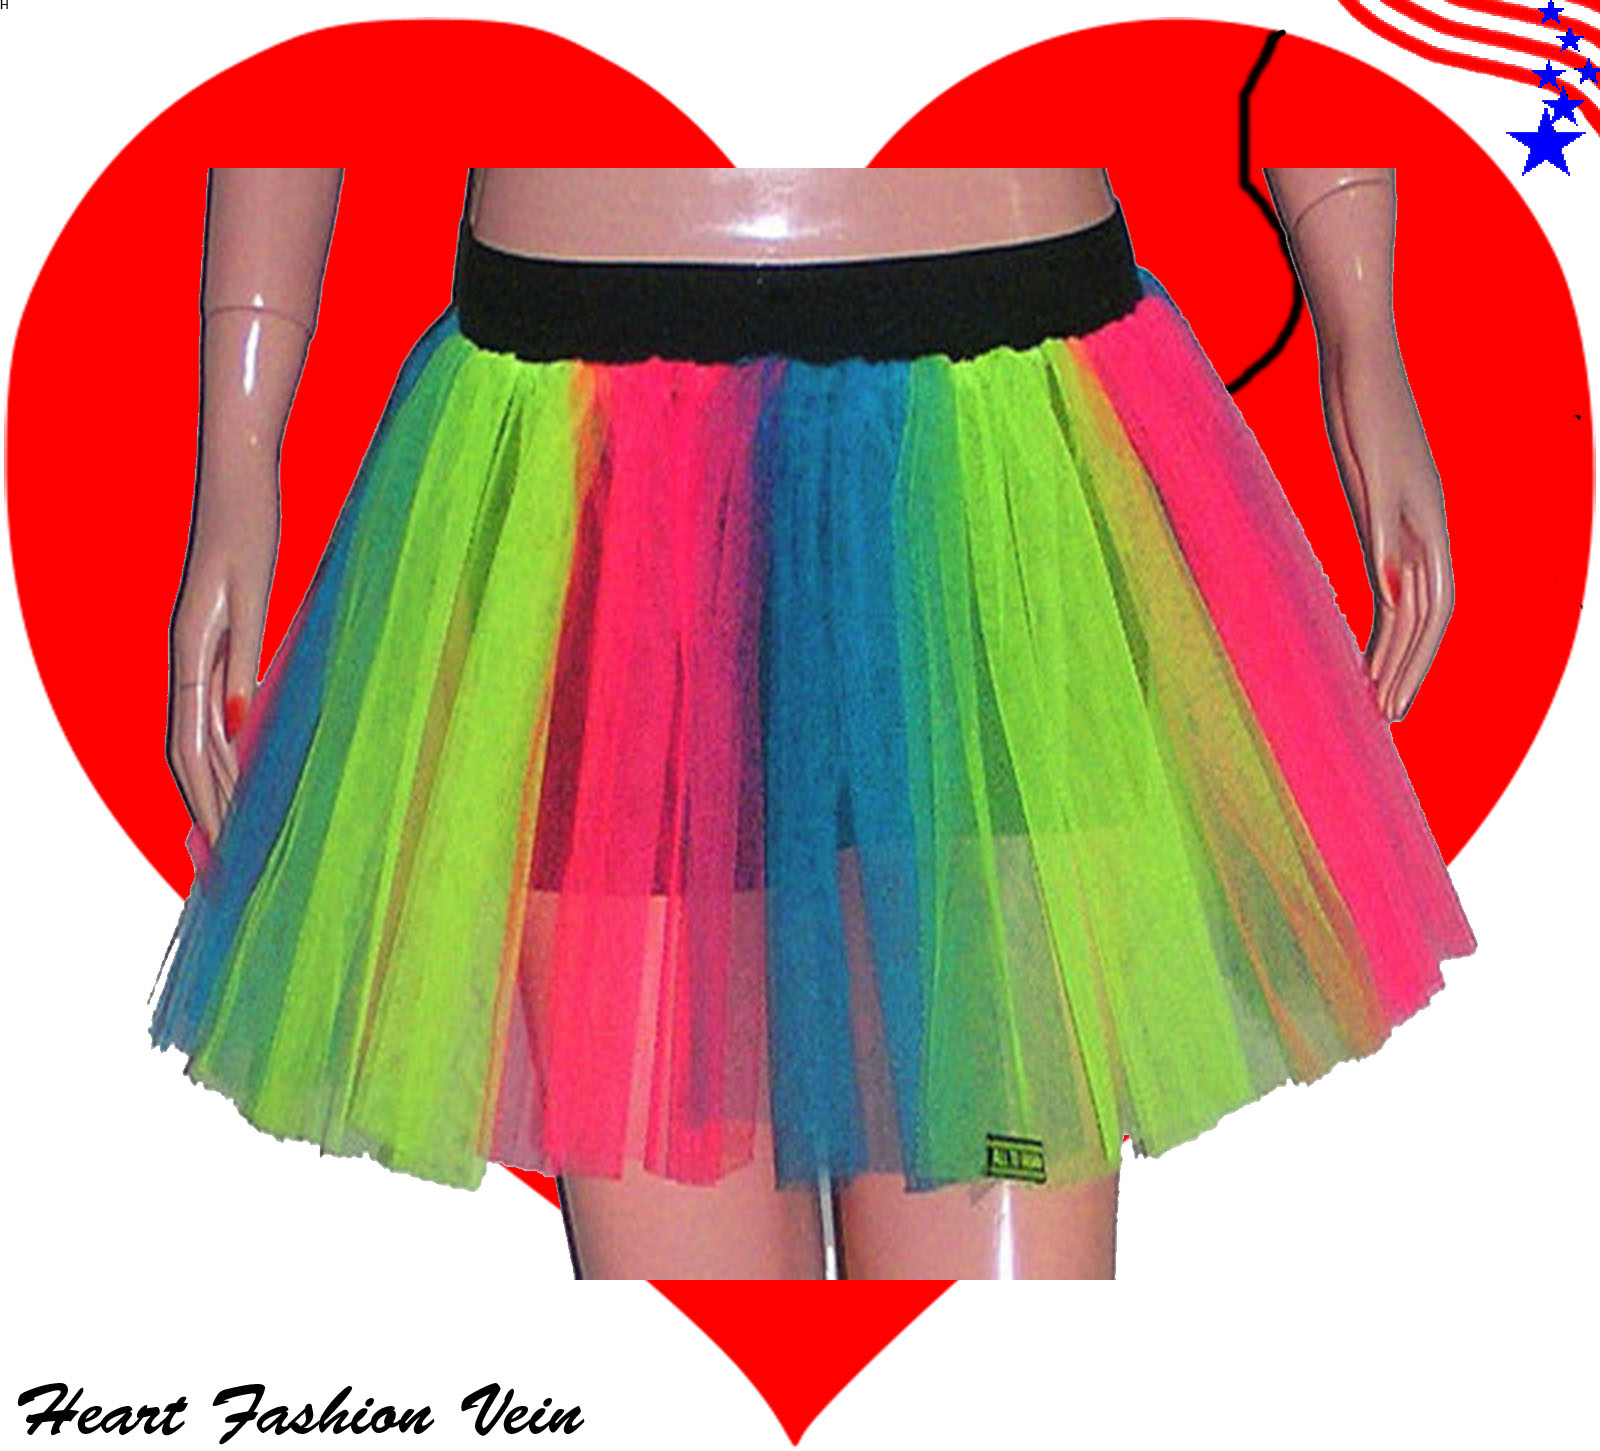 Home Heart Fashion Vein Tutu Skirt Petticoat Legwarmers Fancy Costumes Dress Halloween Christmas Dance UV Neon Hen Party Parties Clubwear Cosplay Daram